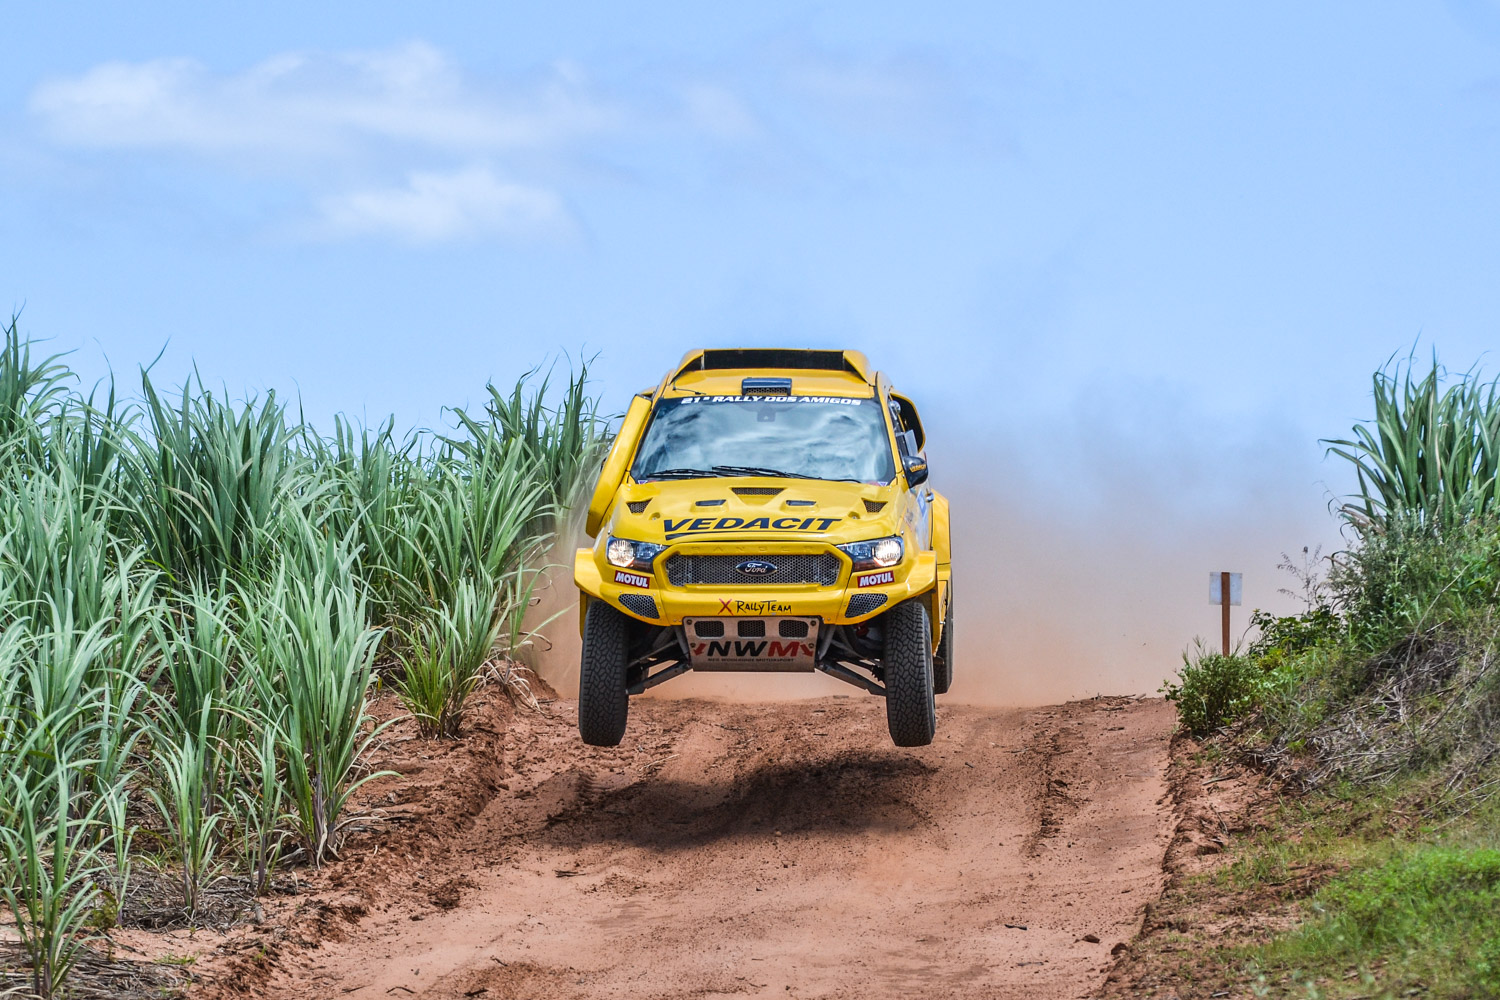 Brasileiro de Cross Country abre temporada e X Rally Team defende o título